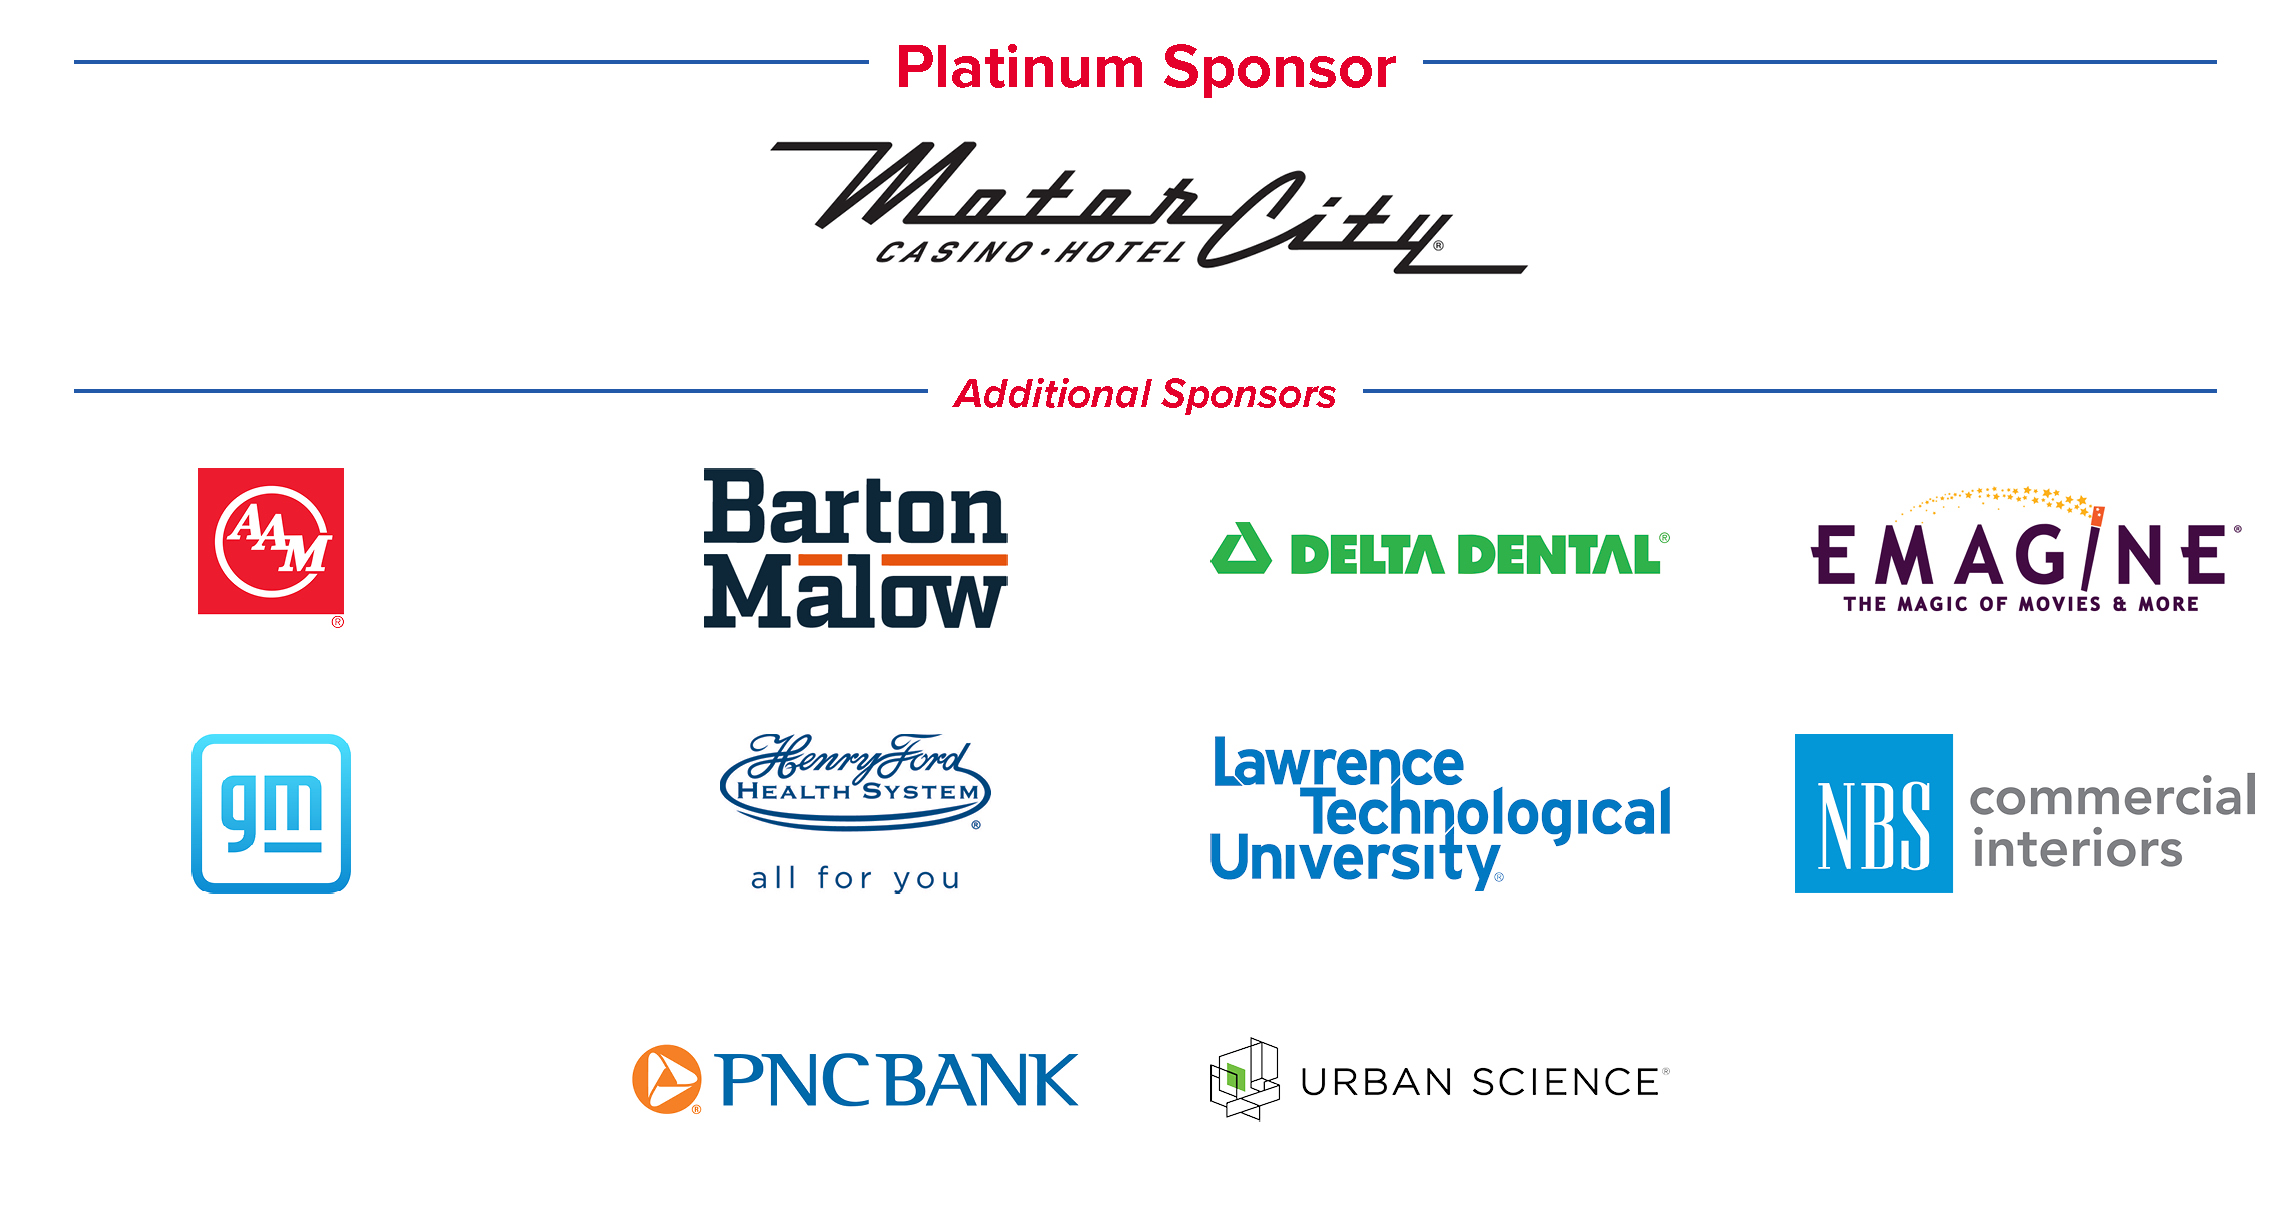 Platinum Sponsor: MotorCity Casino Hotel; Additional Sponsors: AAM, Barton Malow, Delta Dental of Michigan, Emagine Entertainment, General Motors, Henry Ford Health System, Lawrence Technological University, NBS Commercial Interiors, PNC Bank, Urban Science